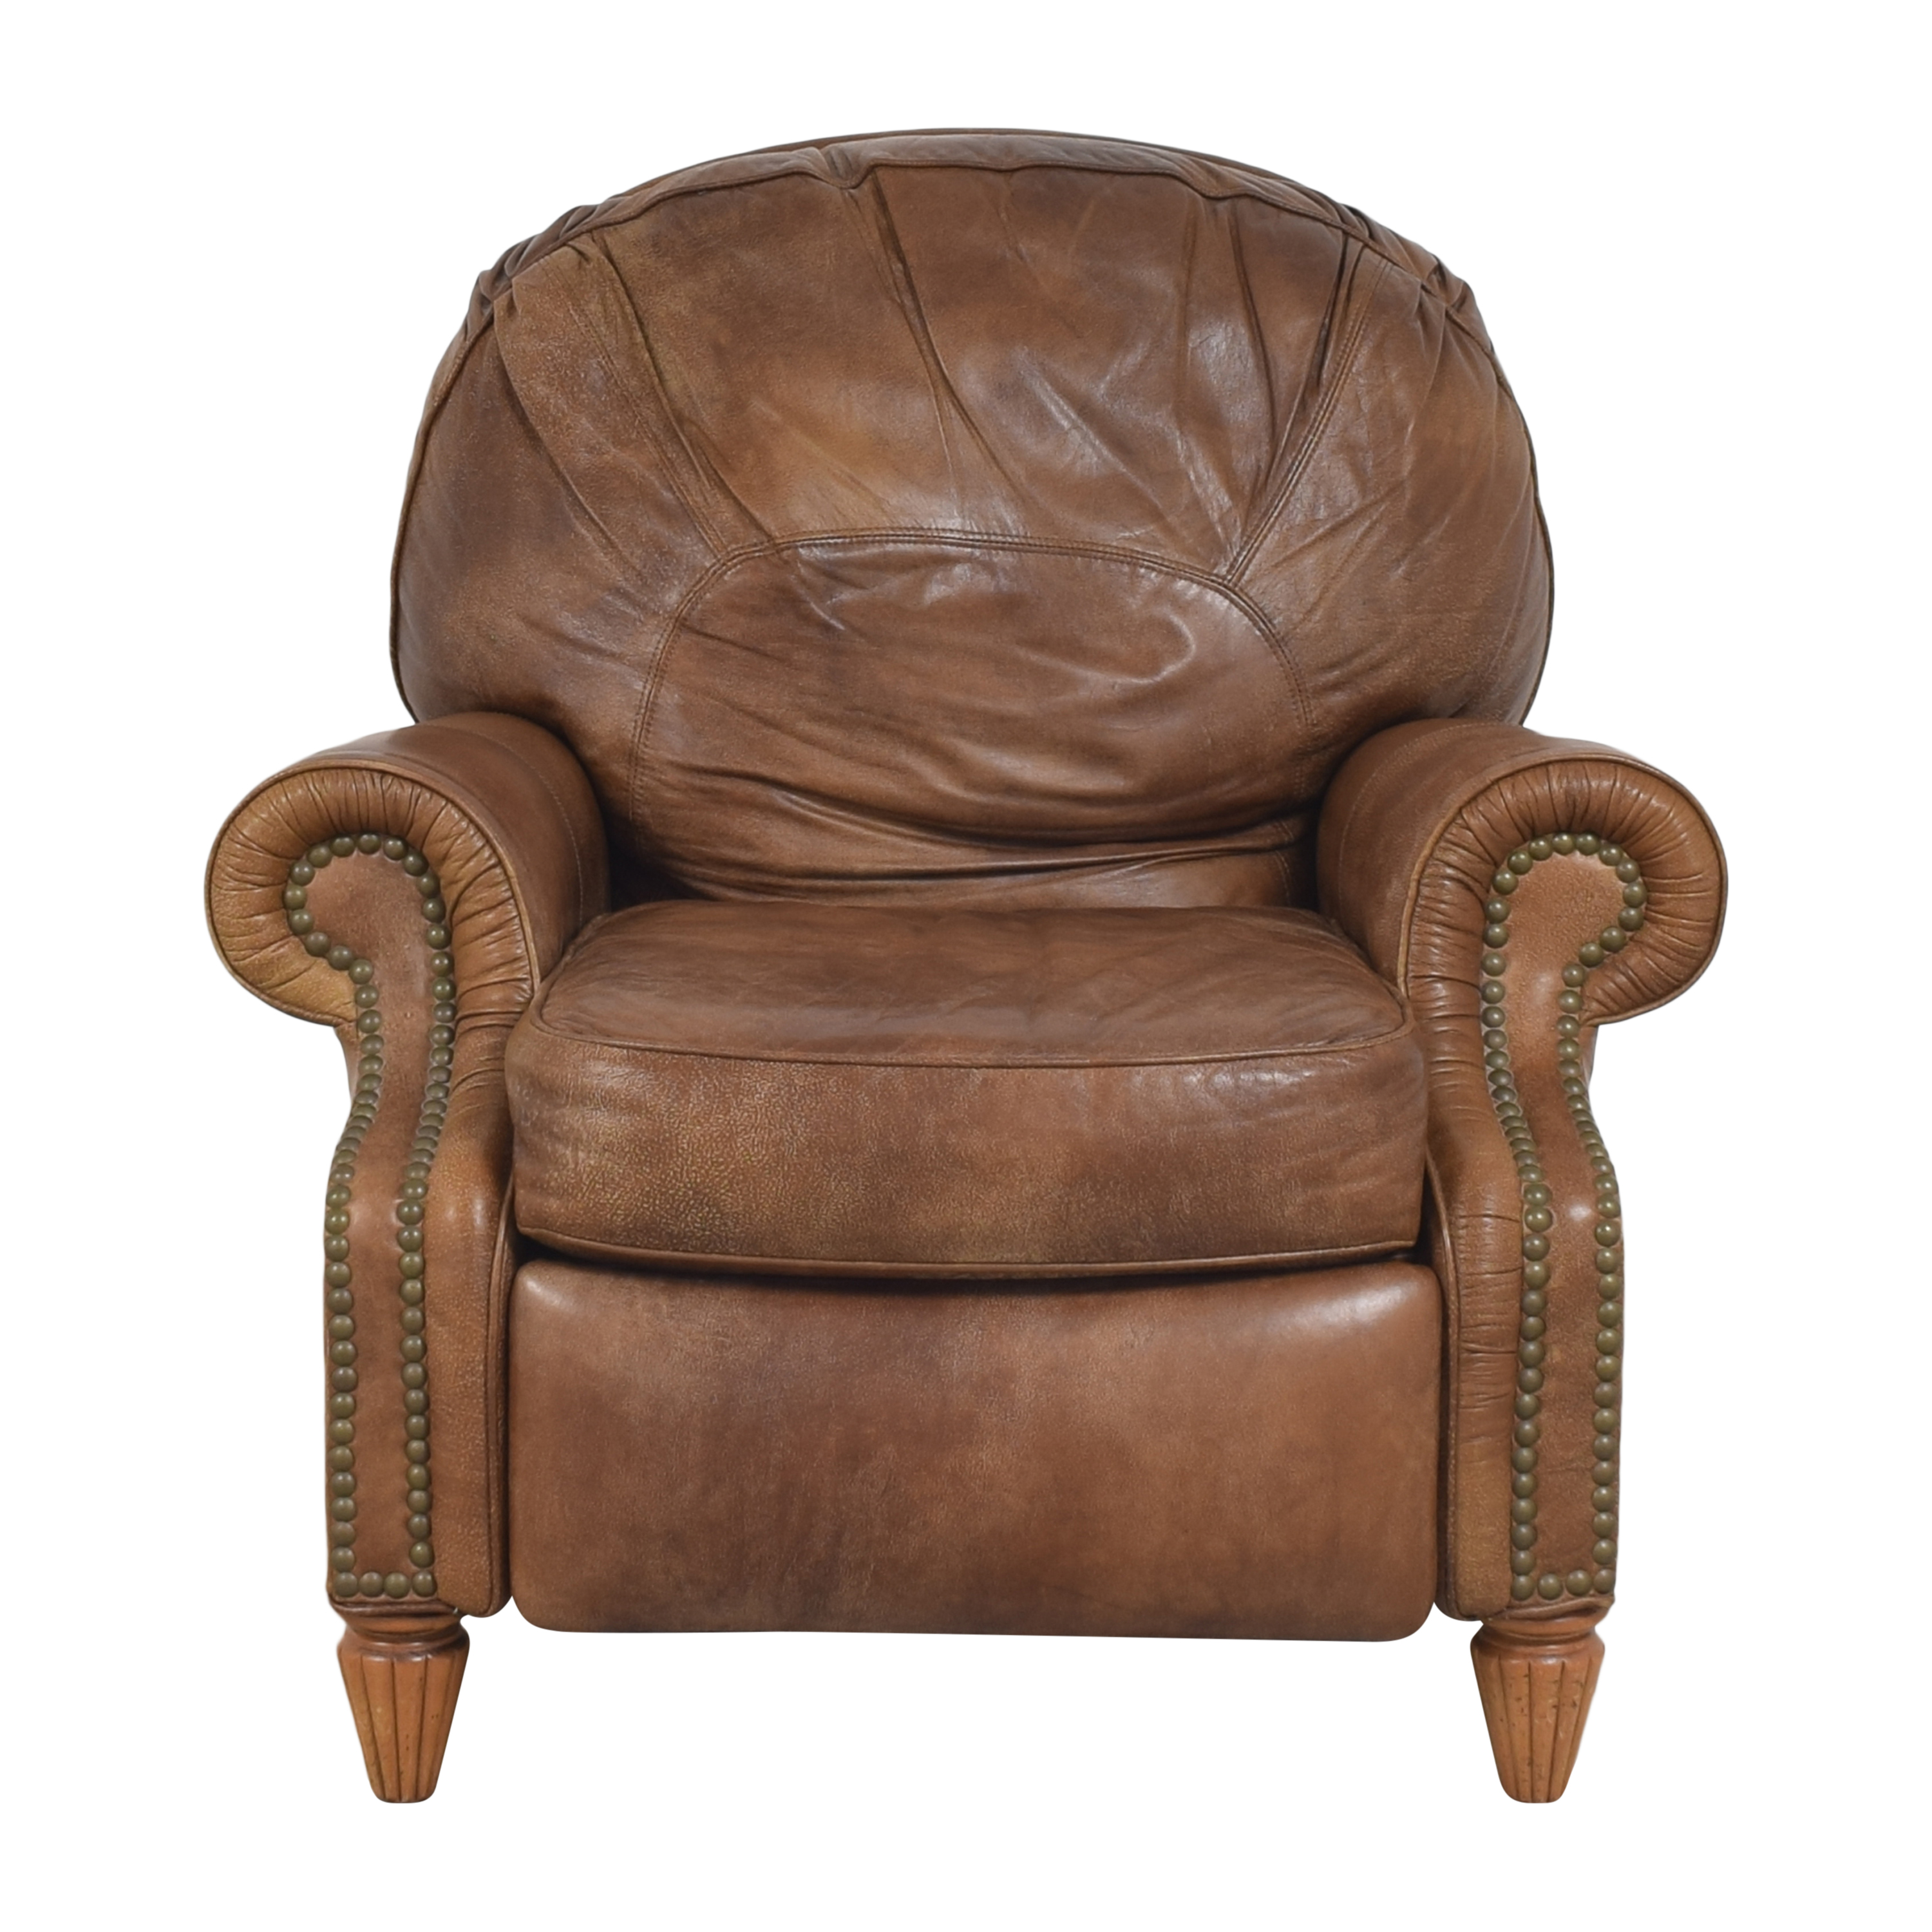 Thomasville Thomasville Morgan Nailhead Recliner discount